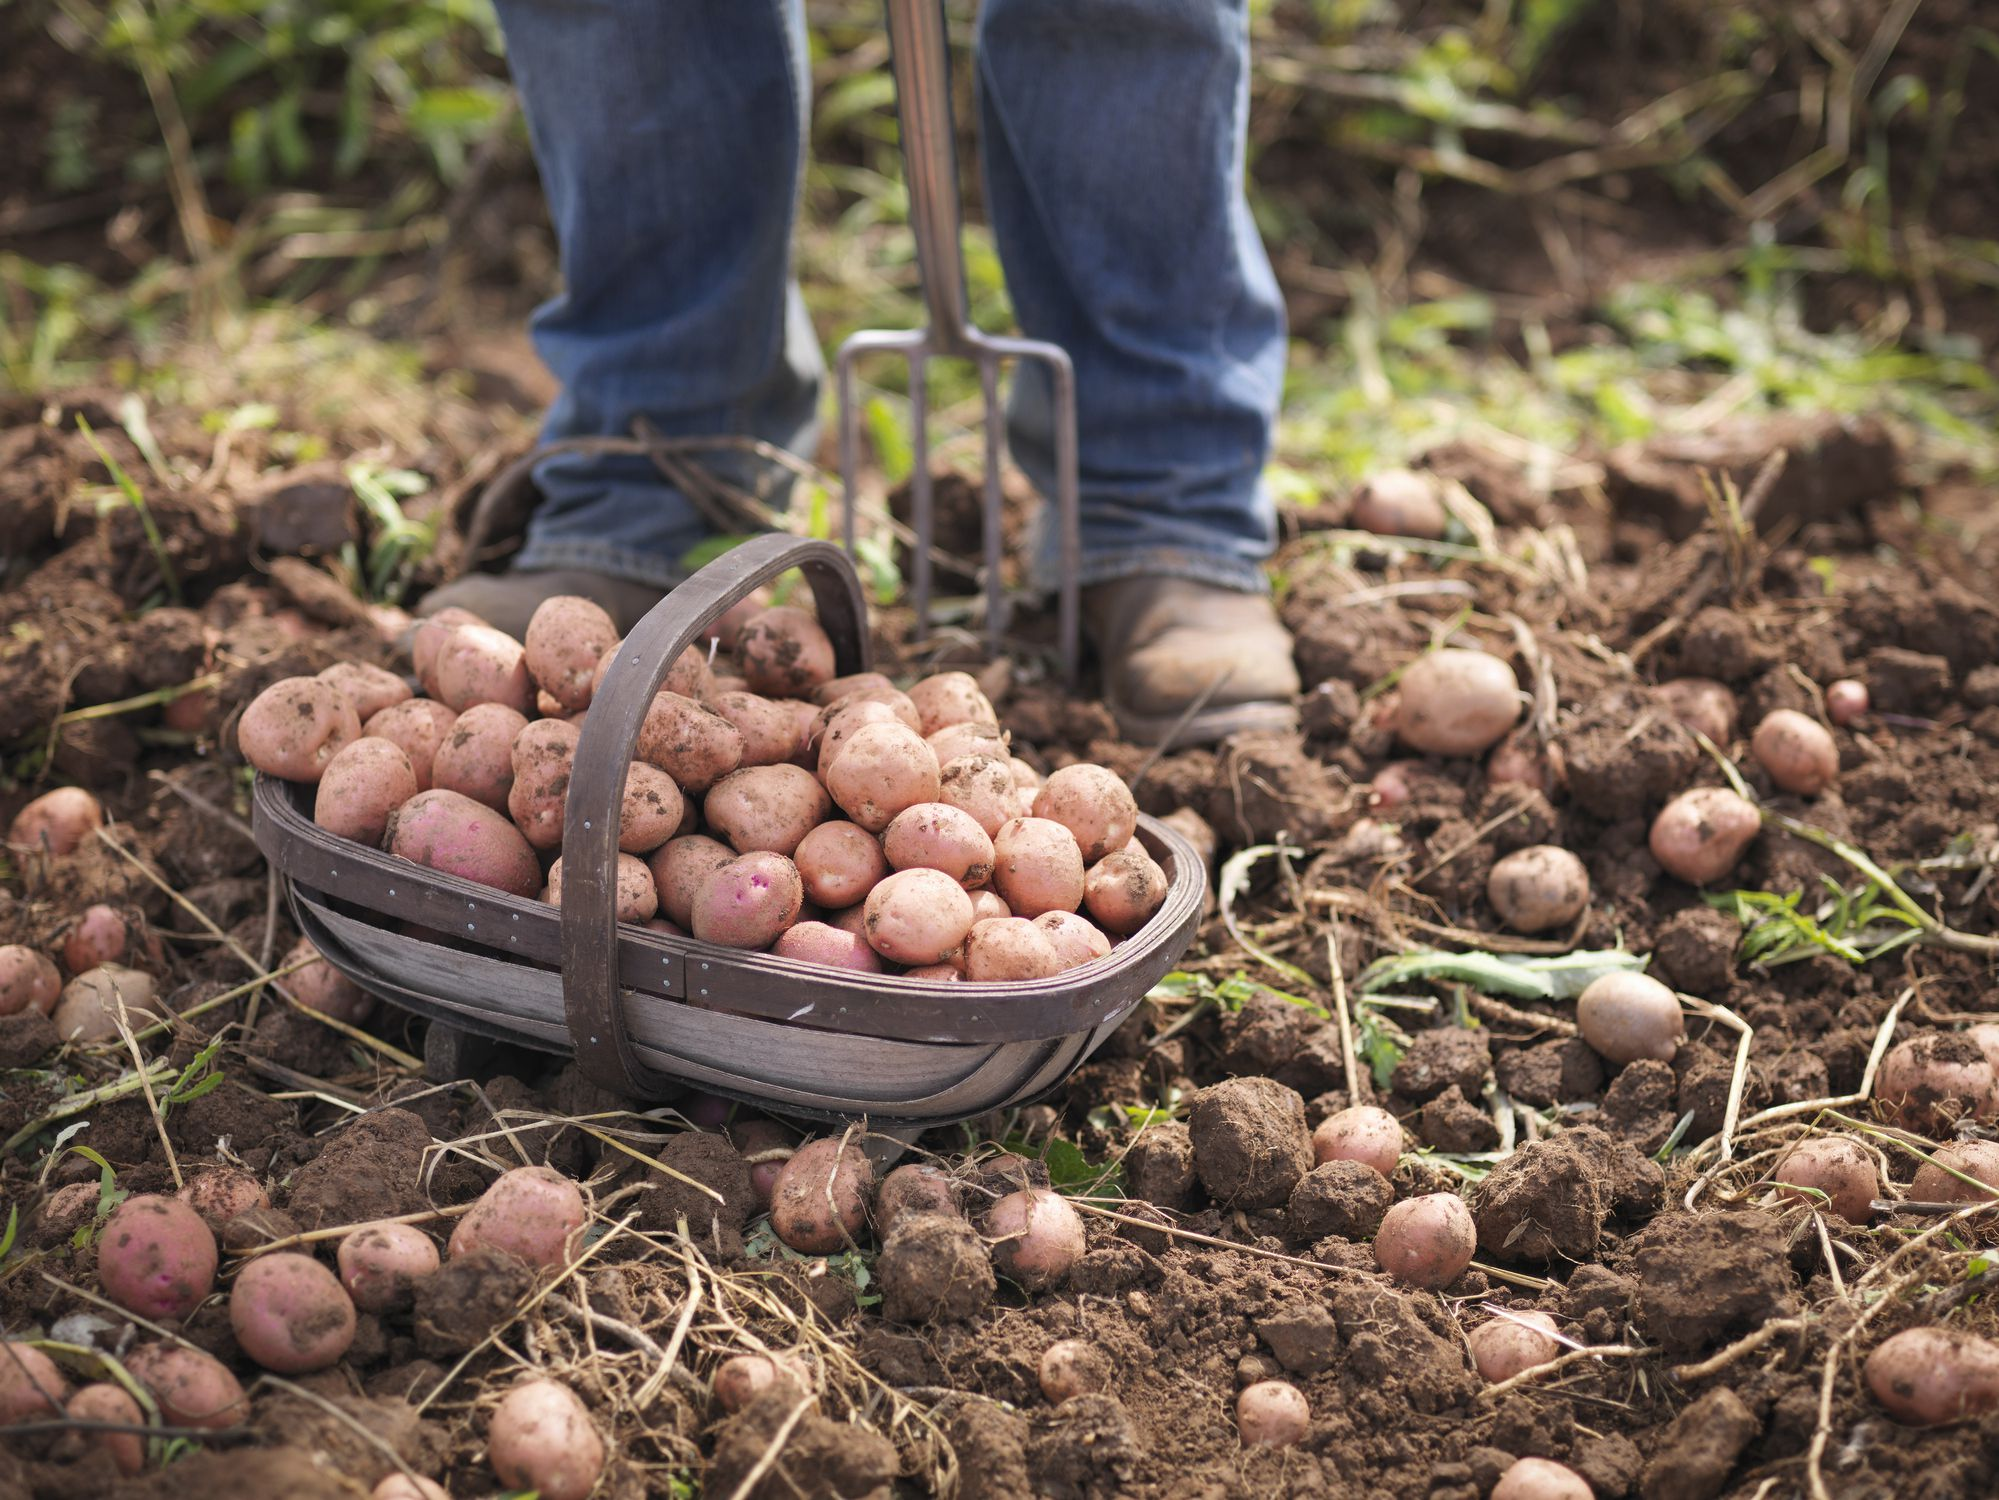 How to Grow Organic Potatoes in Your Garden